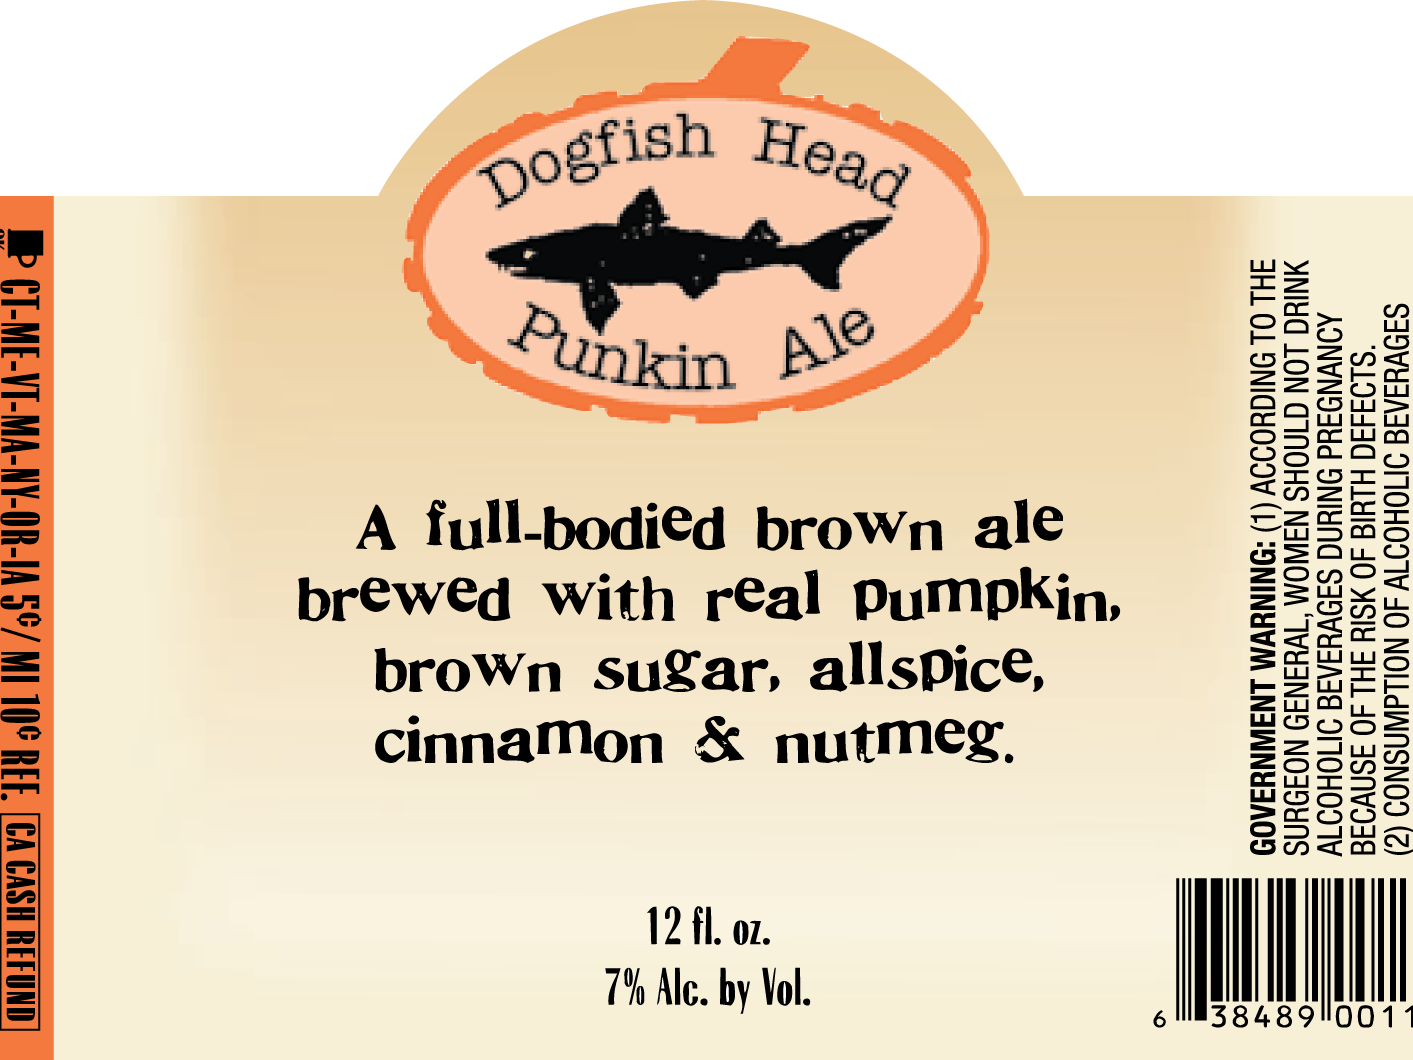 The original Dogfish Head Punkin Ale label.